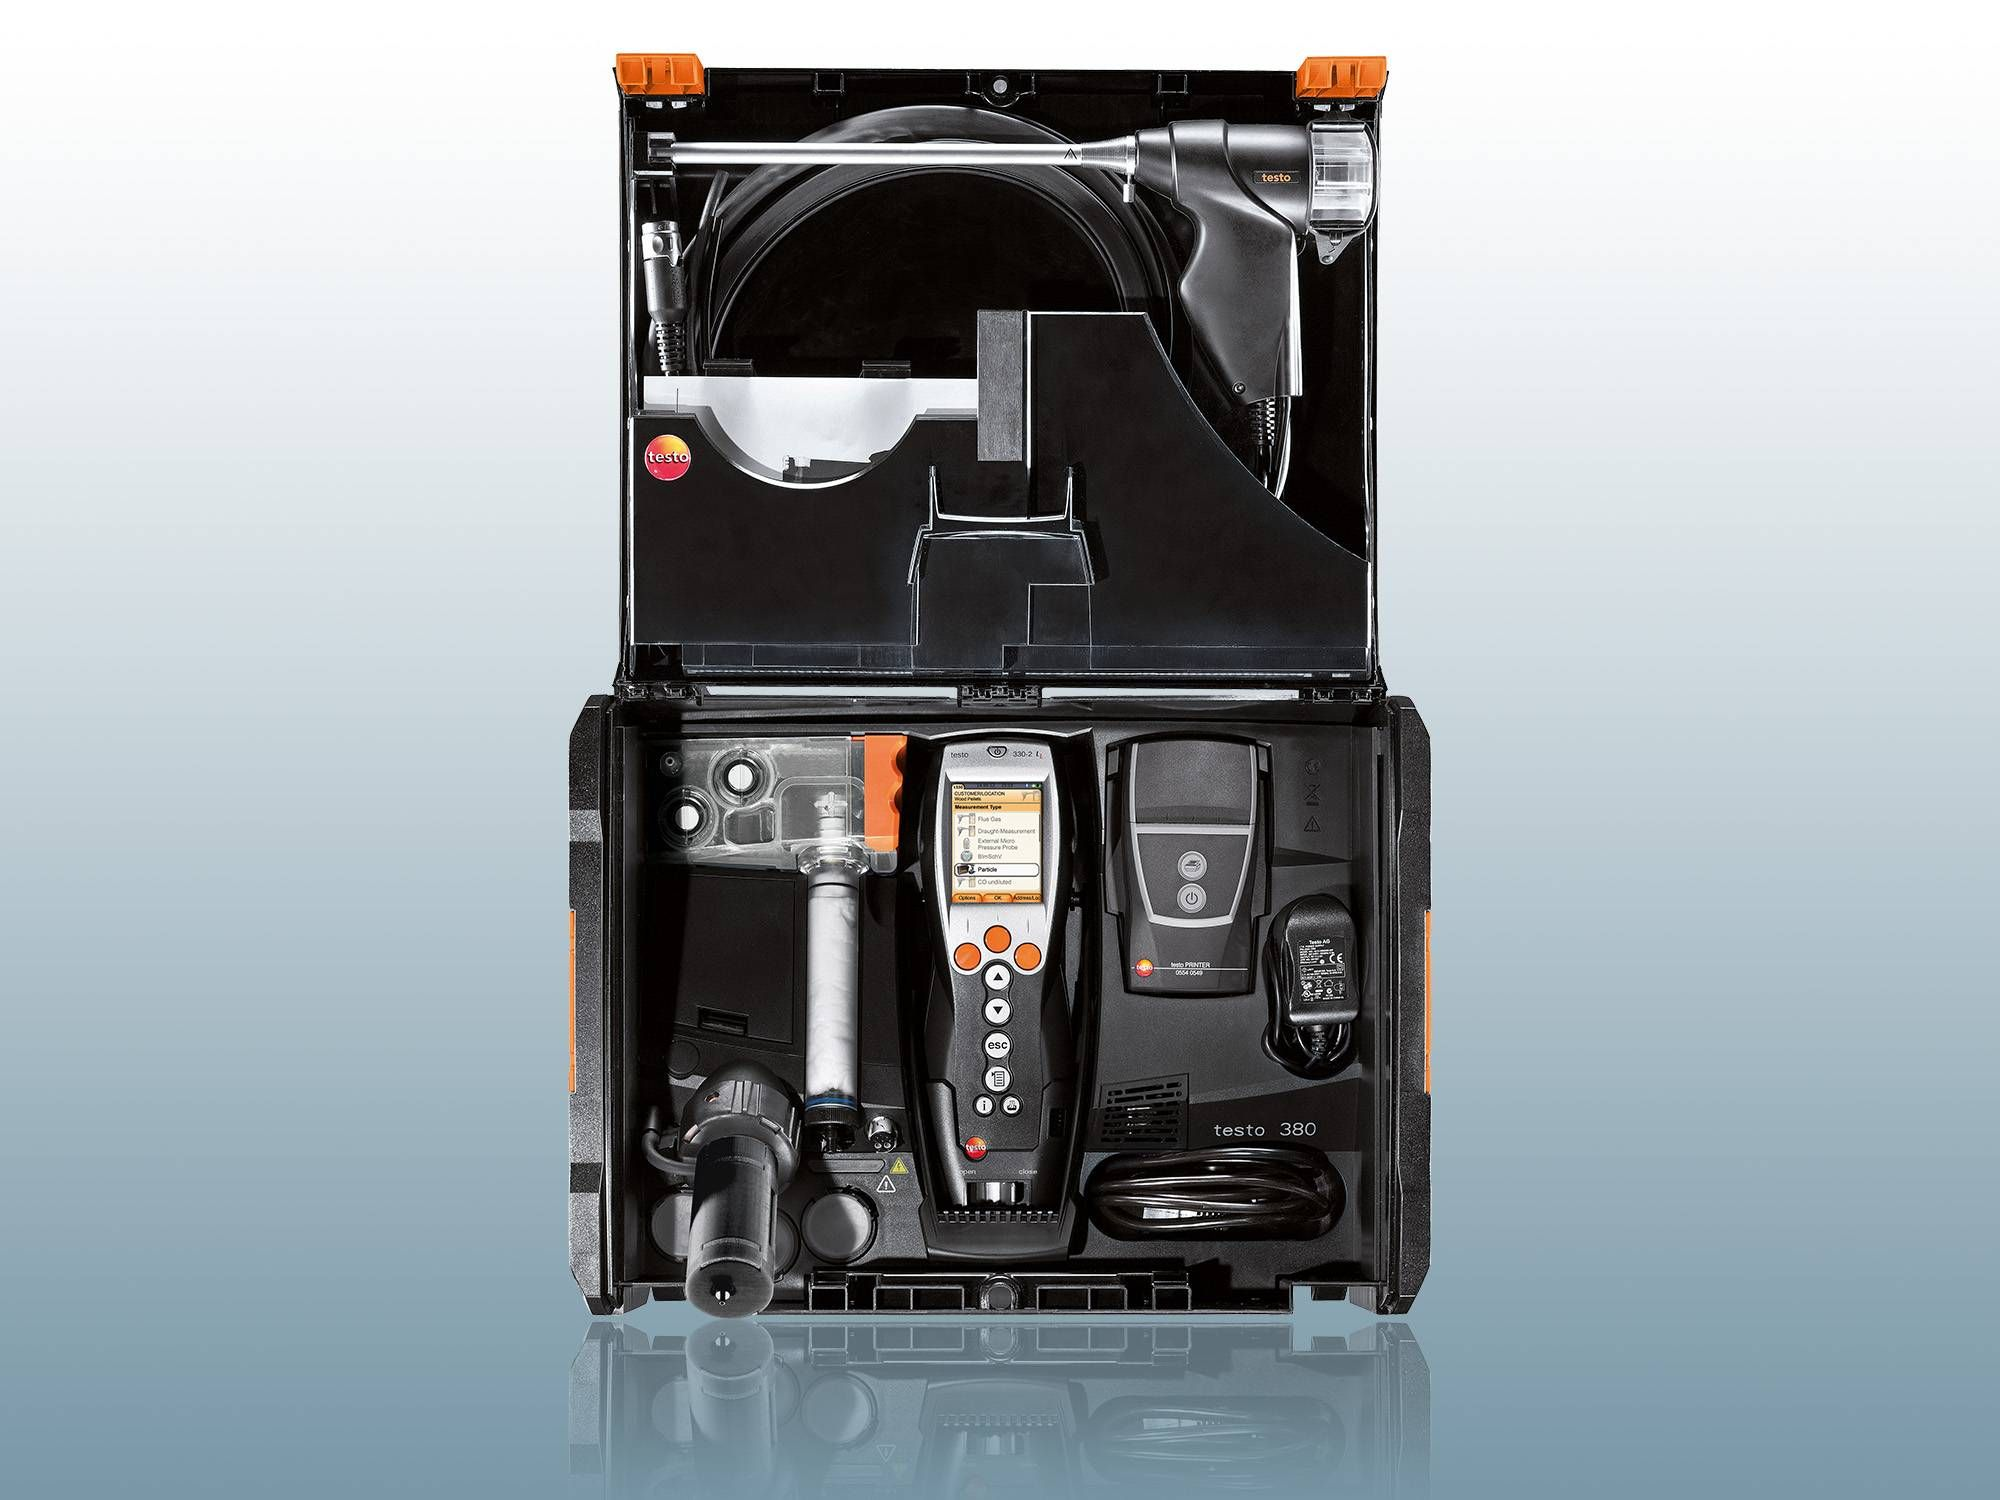 Particulate matter measurement system testo 380